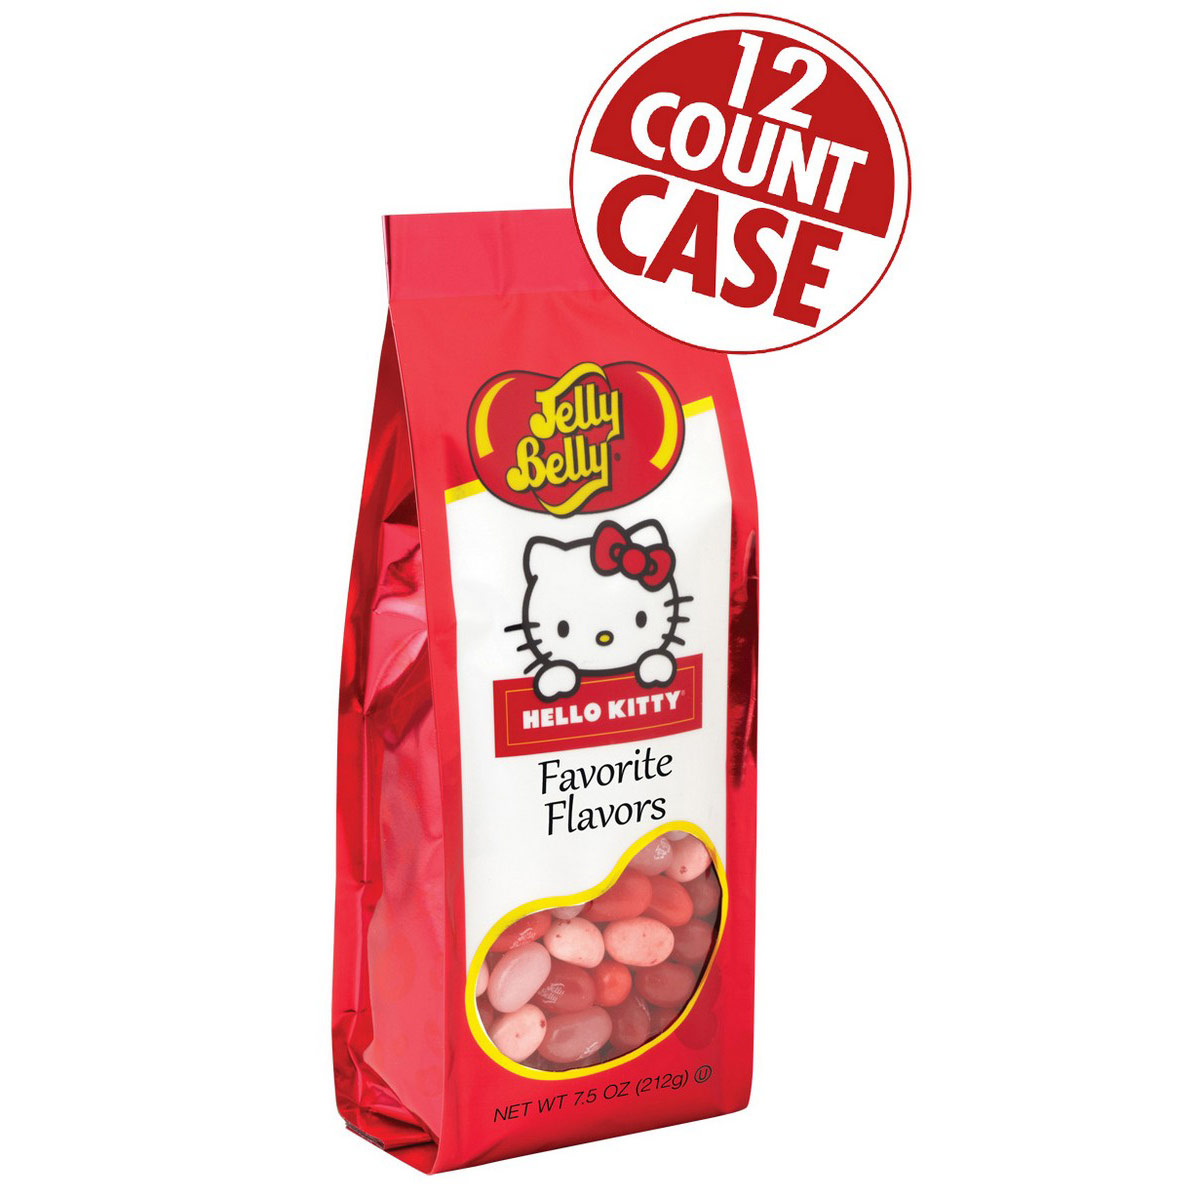 Hello Kitty® Favorite Flavors Jelly Beans - 7.5 oz Gift Bag - 12 Count Case